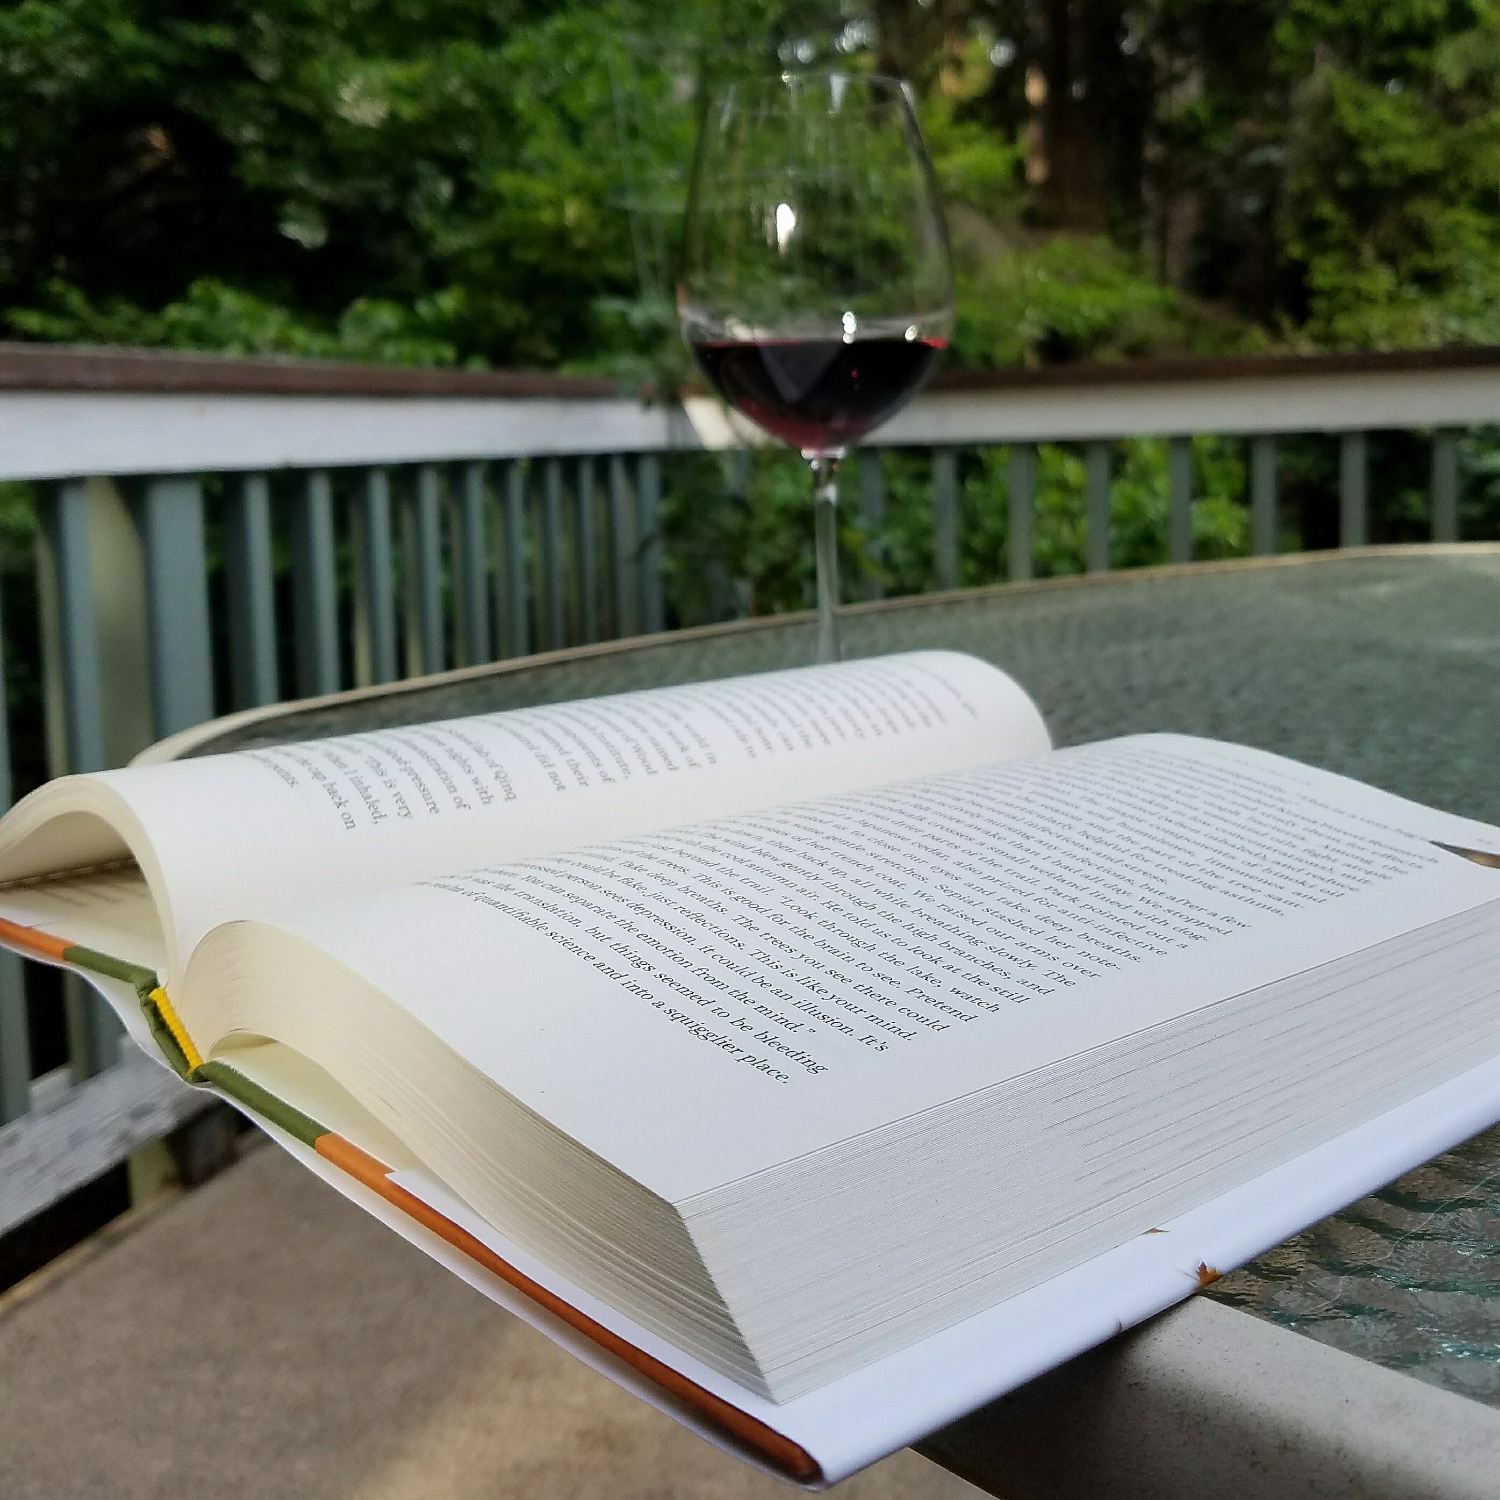 Reading outside at 7 PM - what luxury!